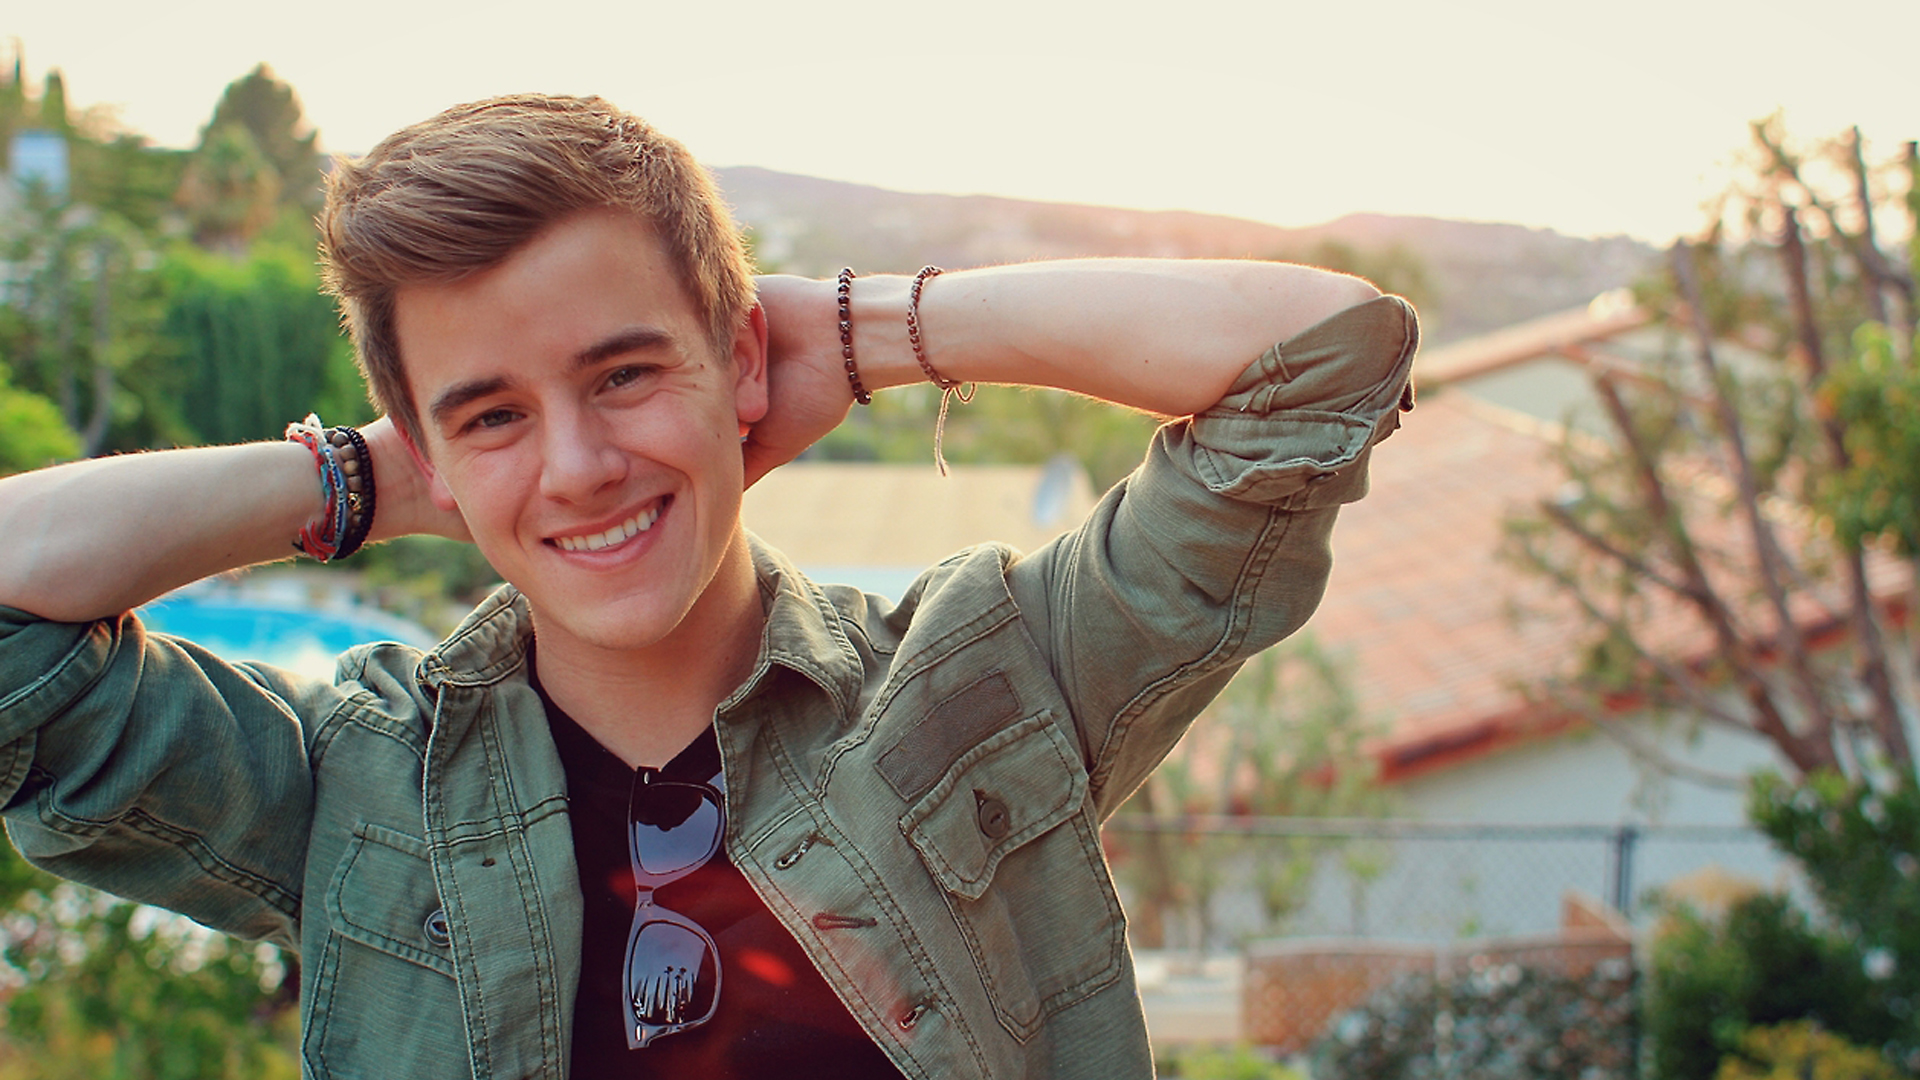 Connorfranta 2014